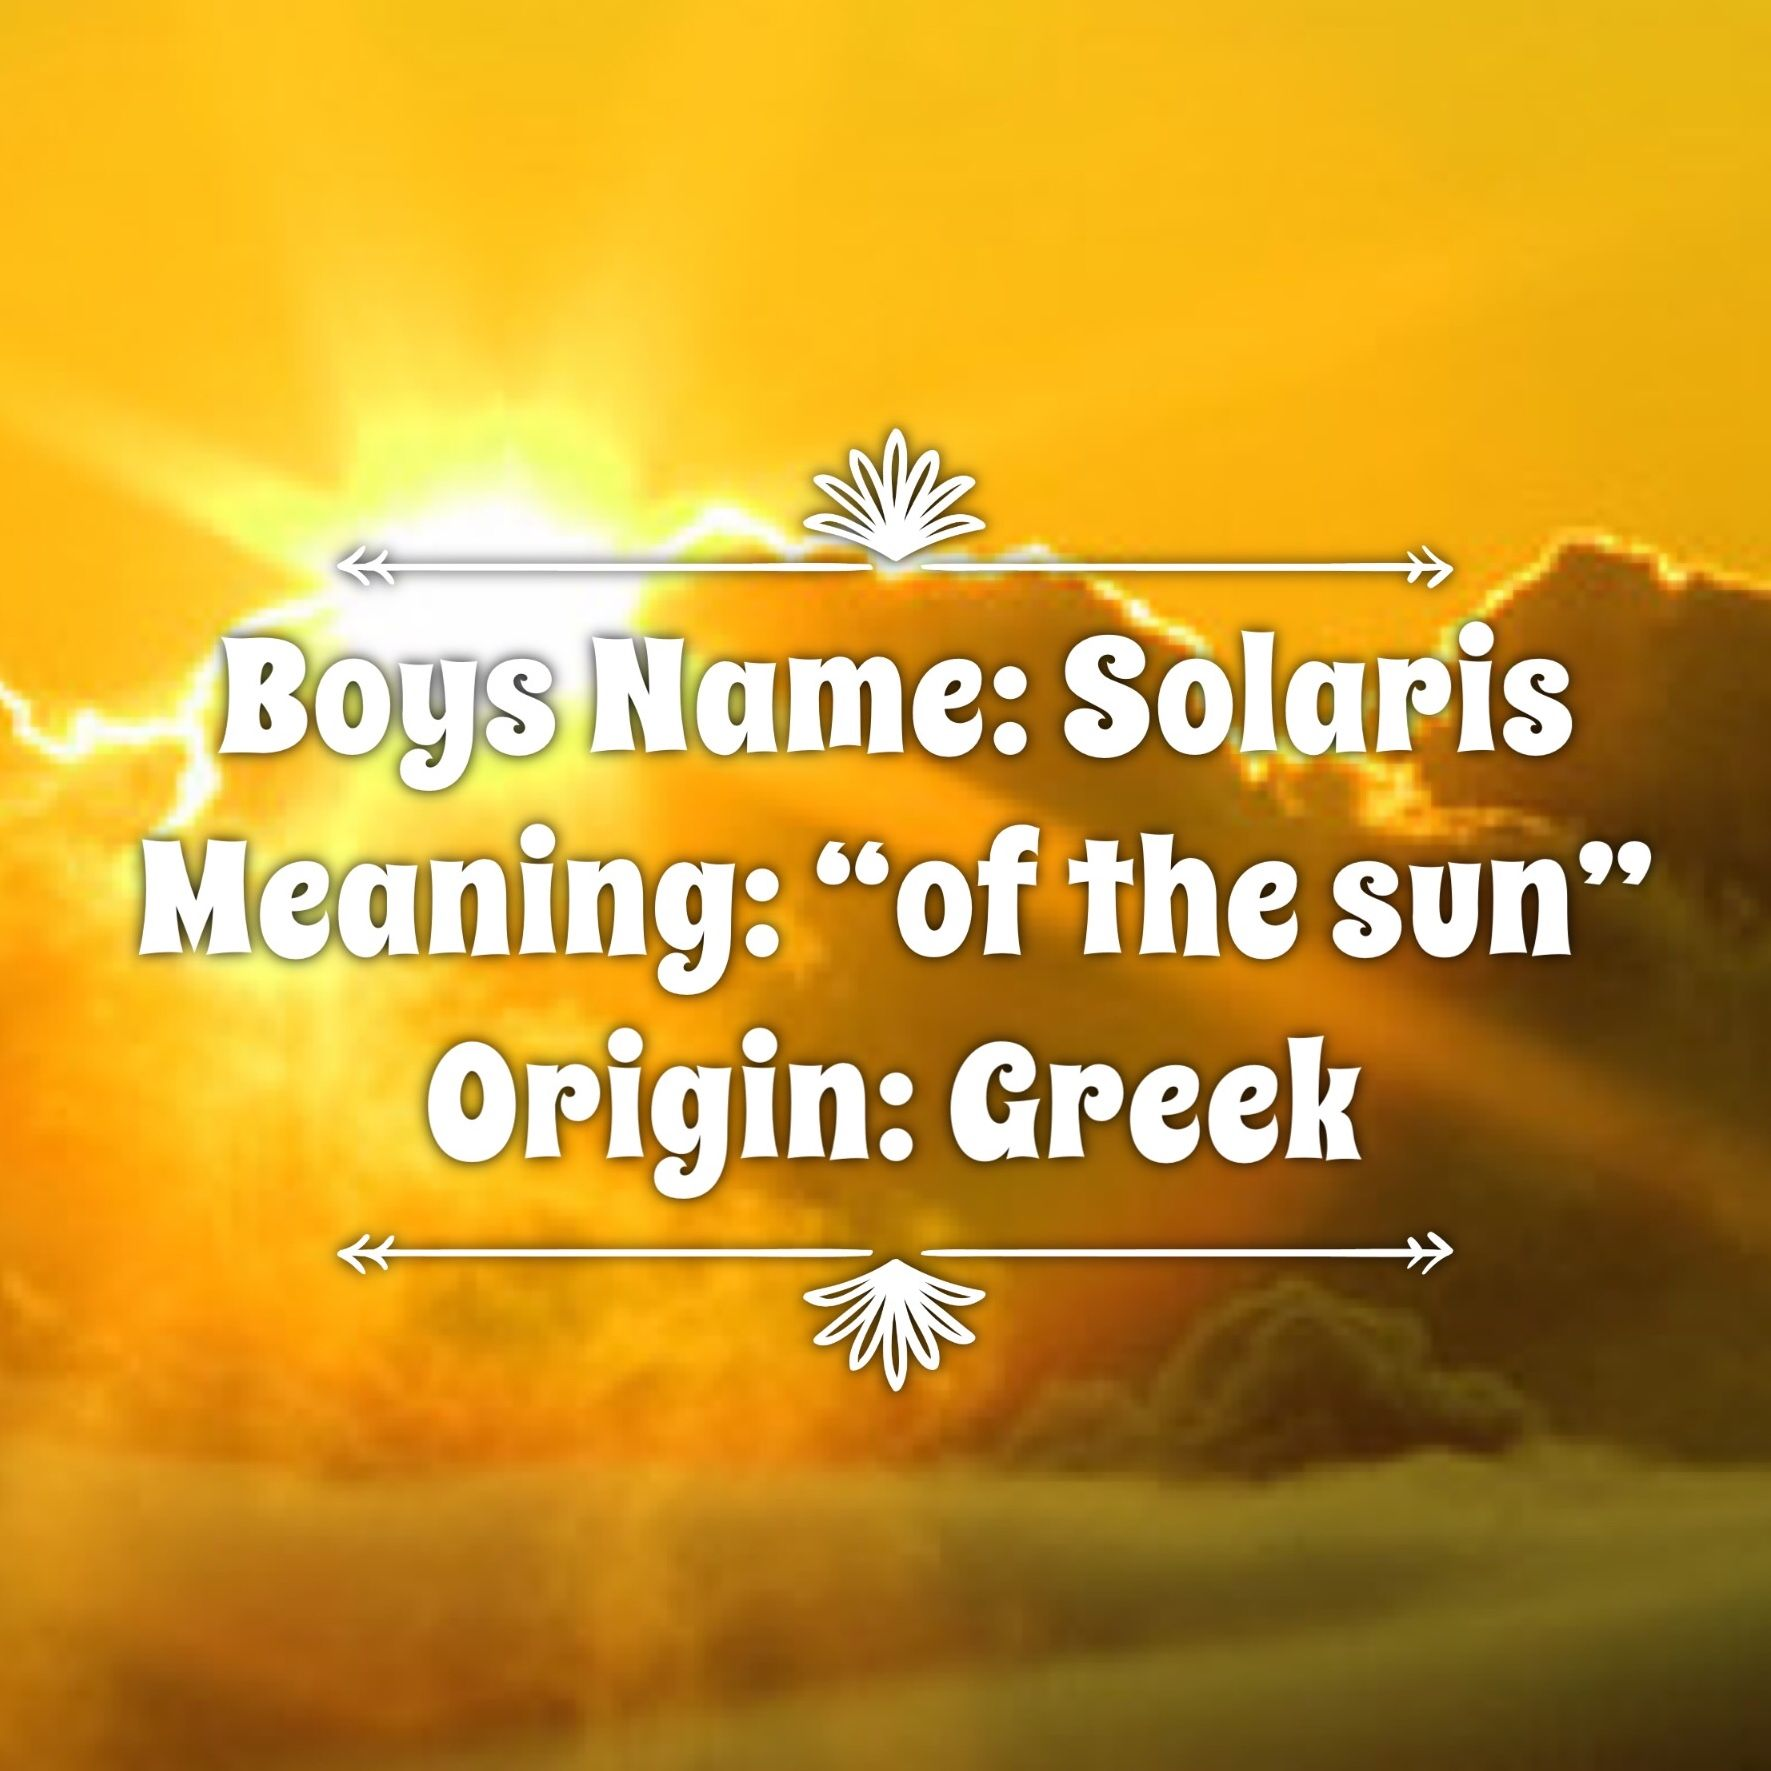 Maliks Name: Meaning of Name, Origin, Character and Fate